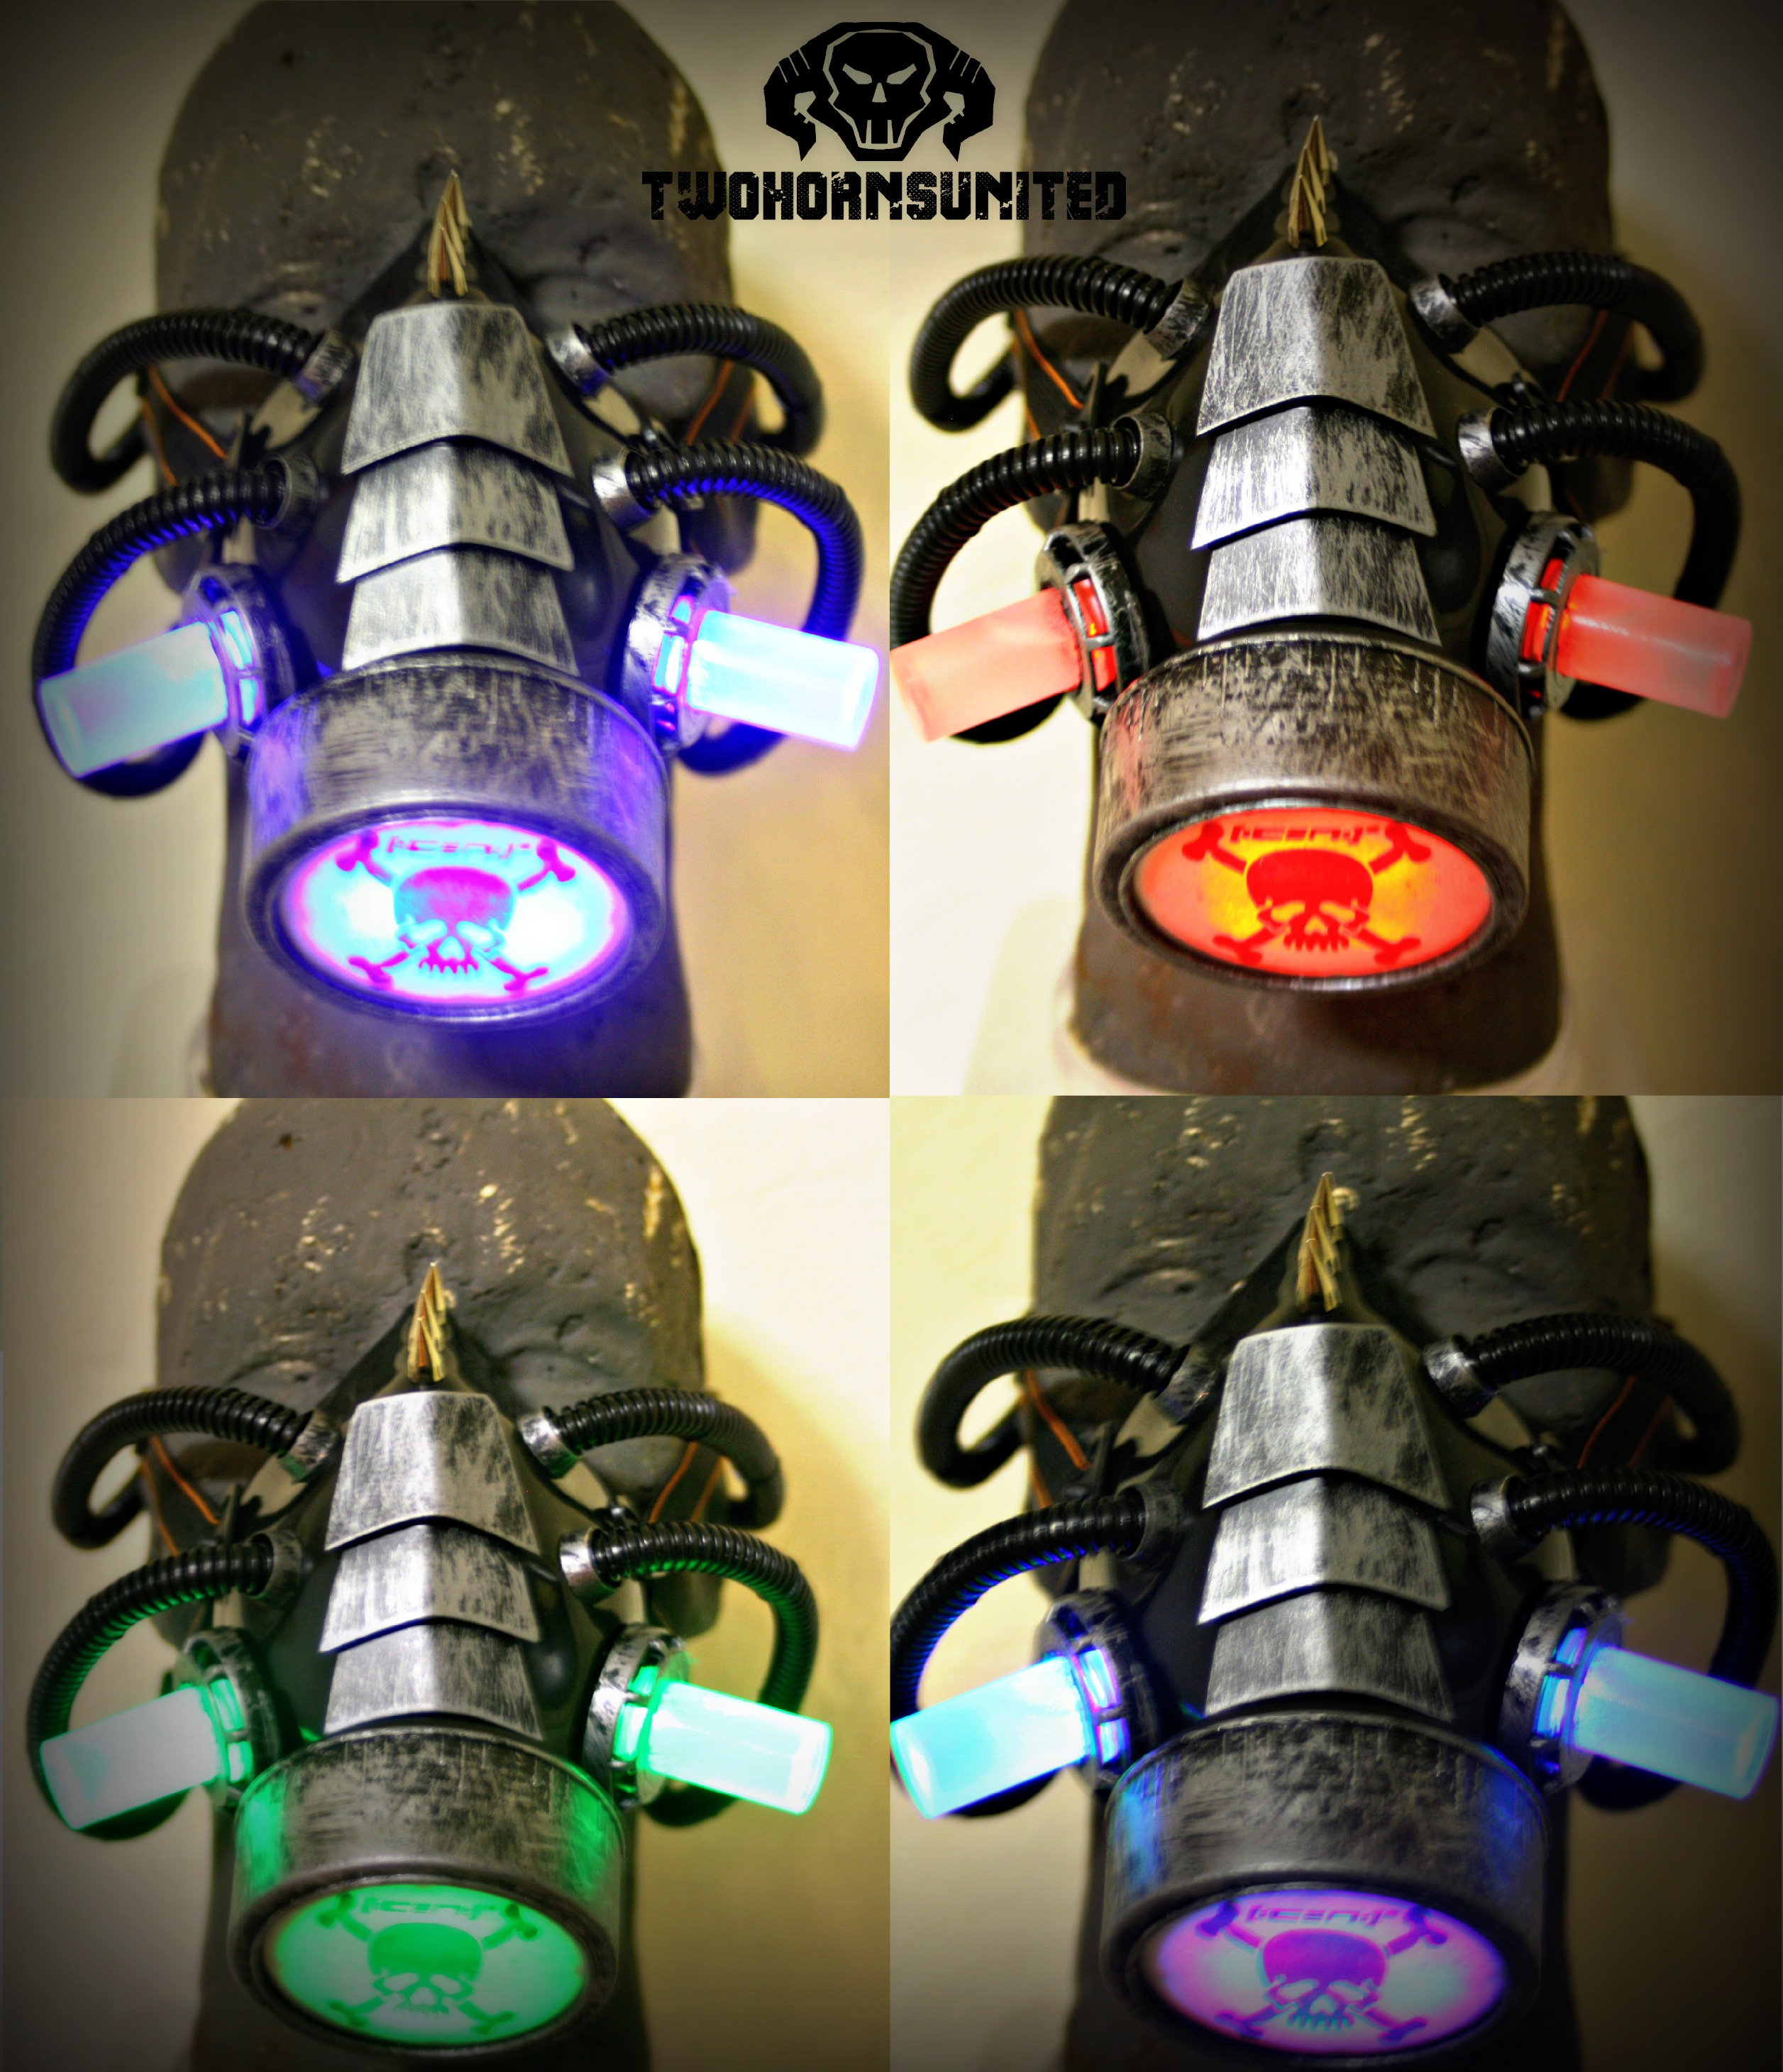 The Transmutation color changing cyberpunk gasmask by TwoHornsUnited